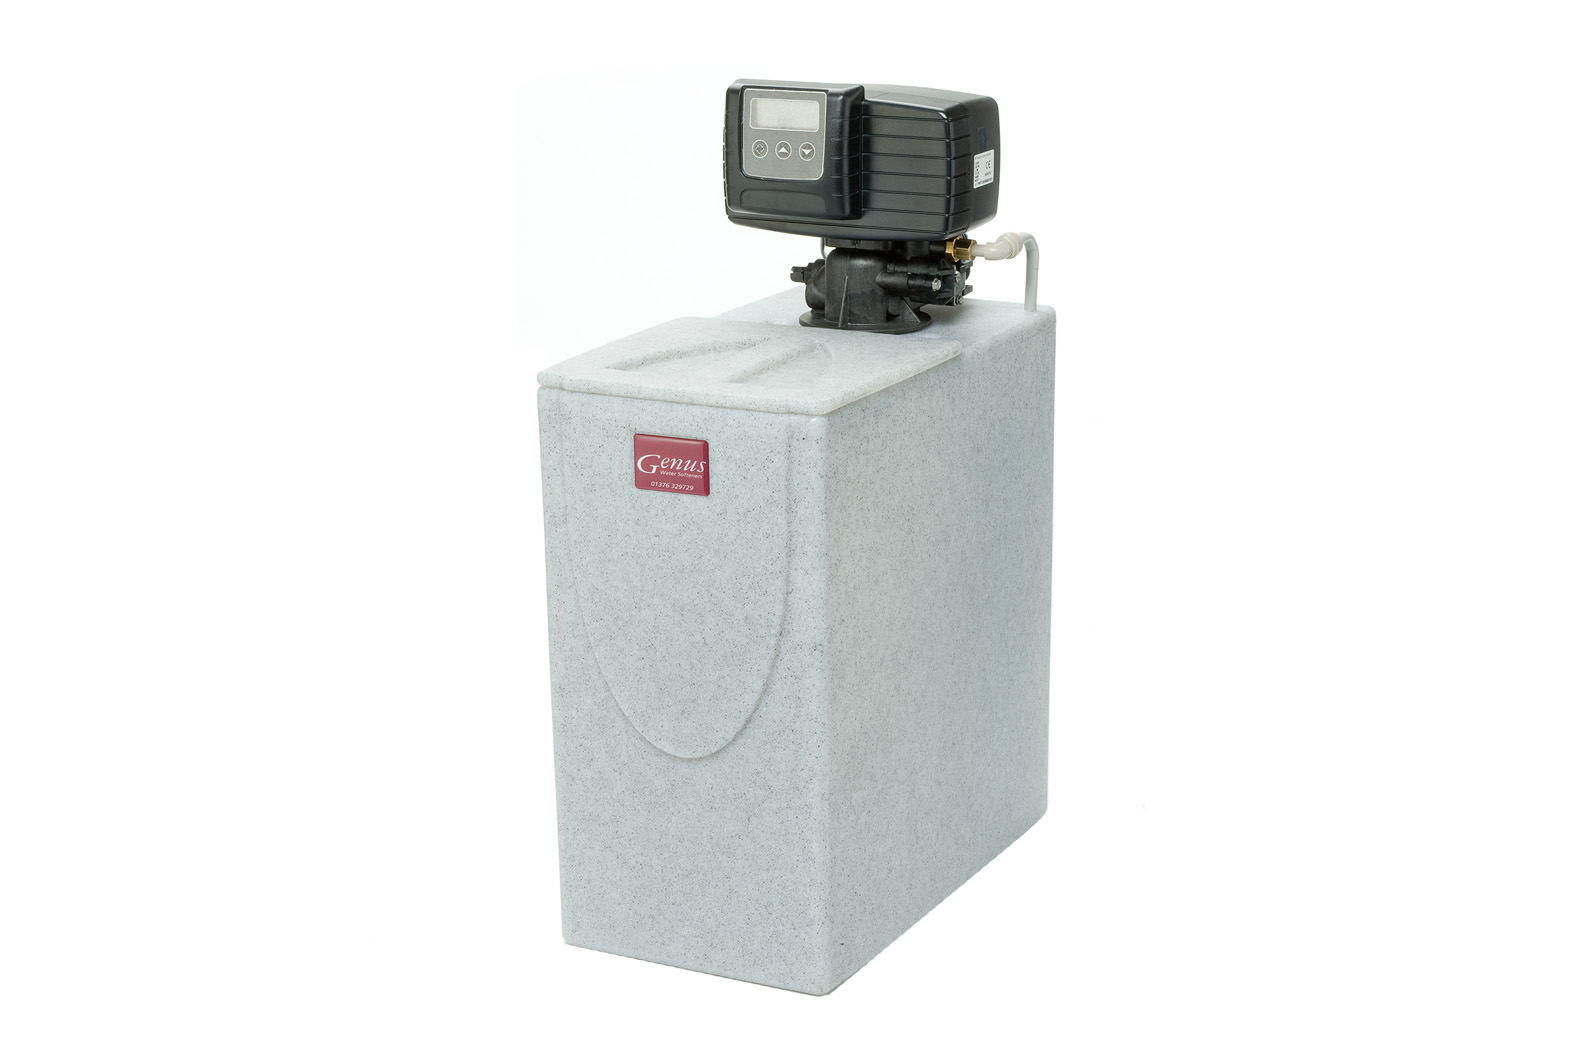 Genus SD 130 water softener